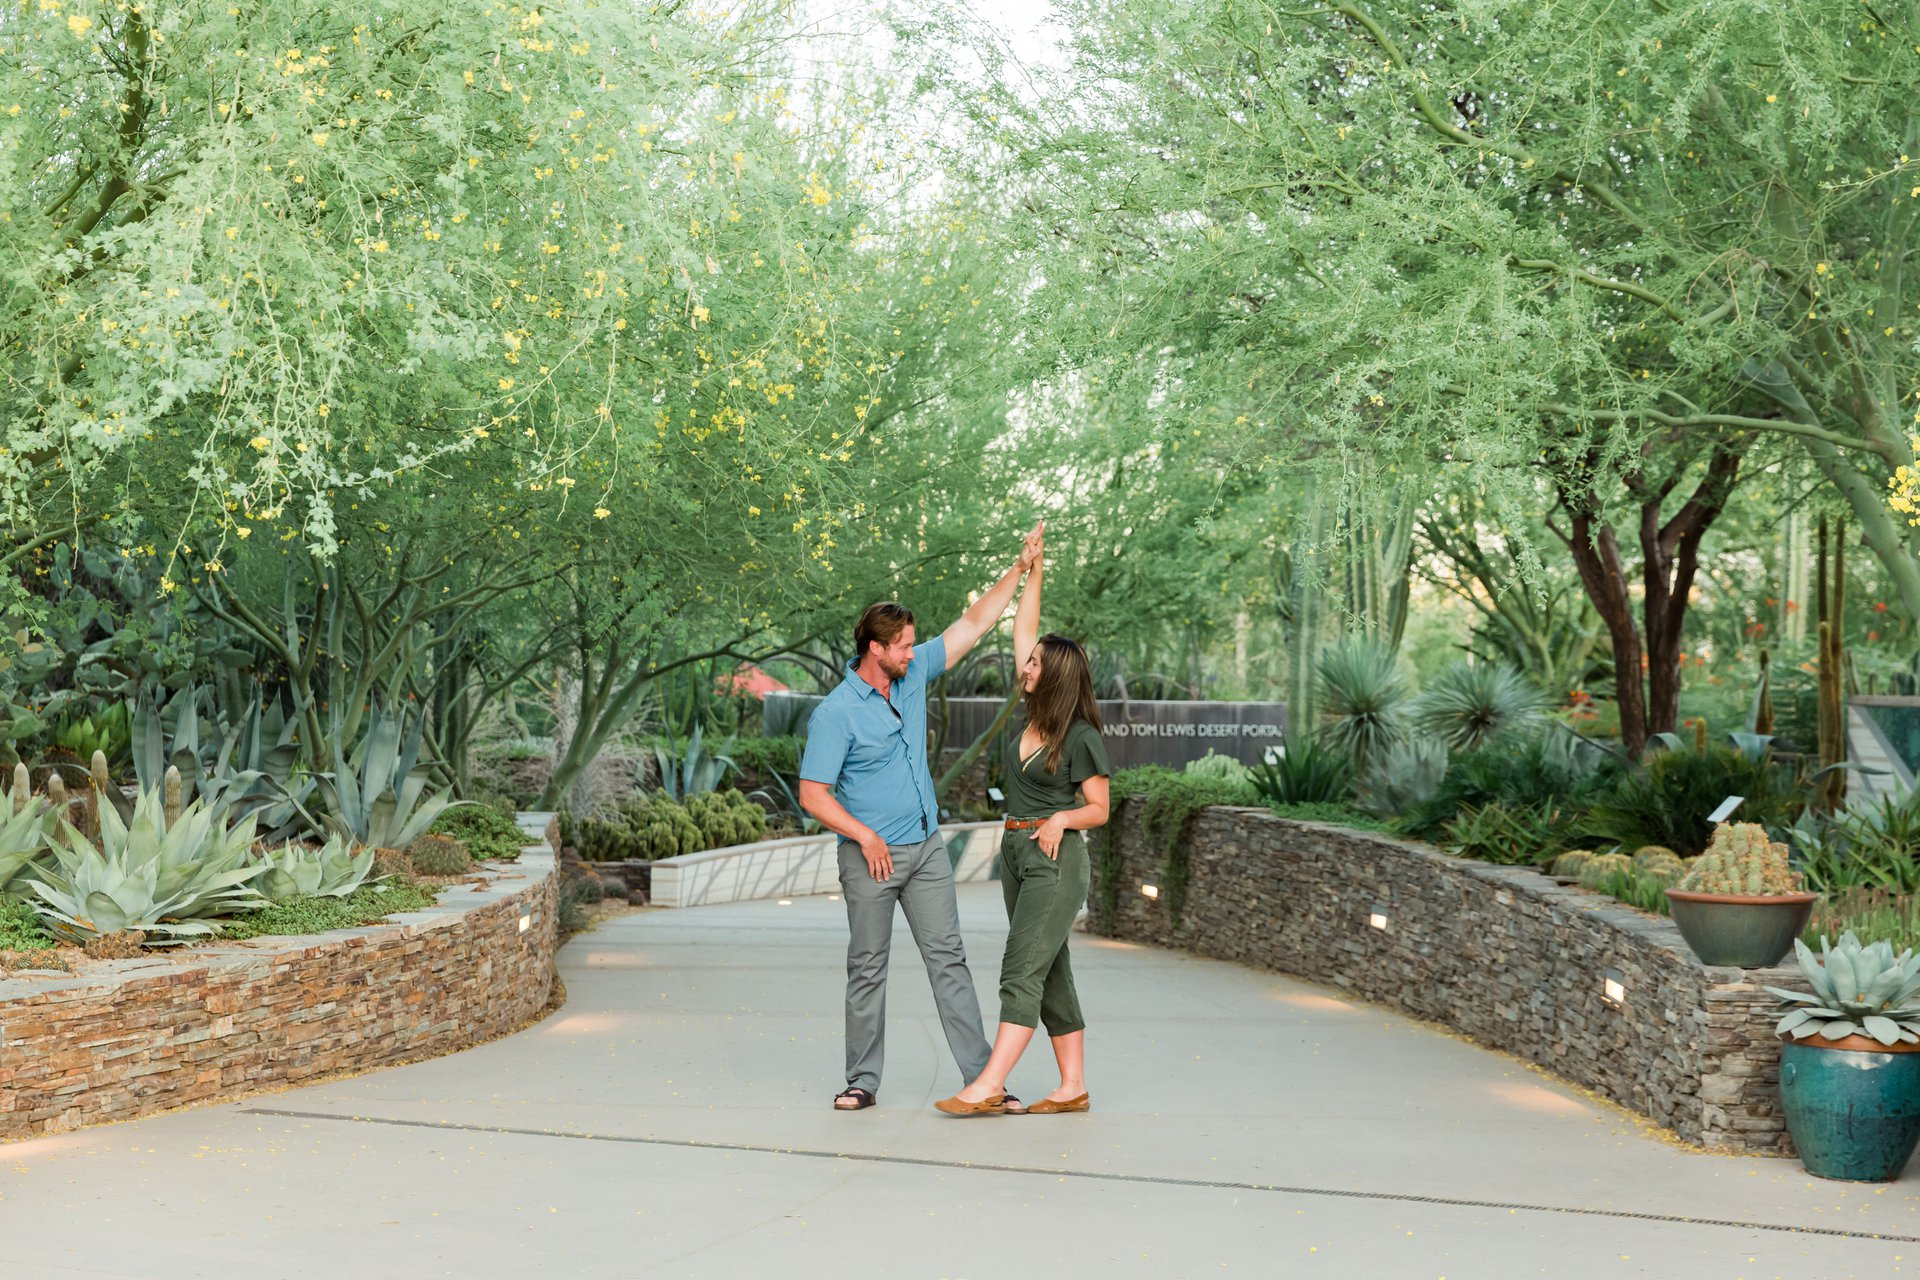 Scottsdale-United States-travel-story-Flytographer-25